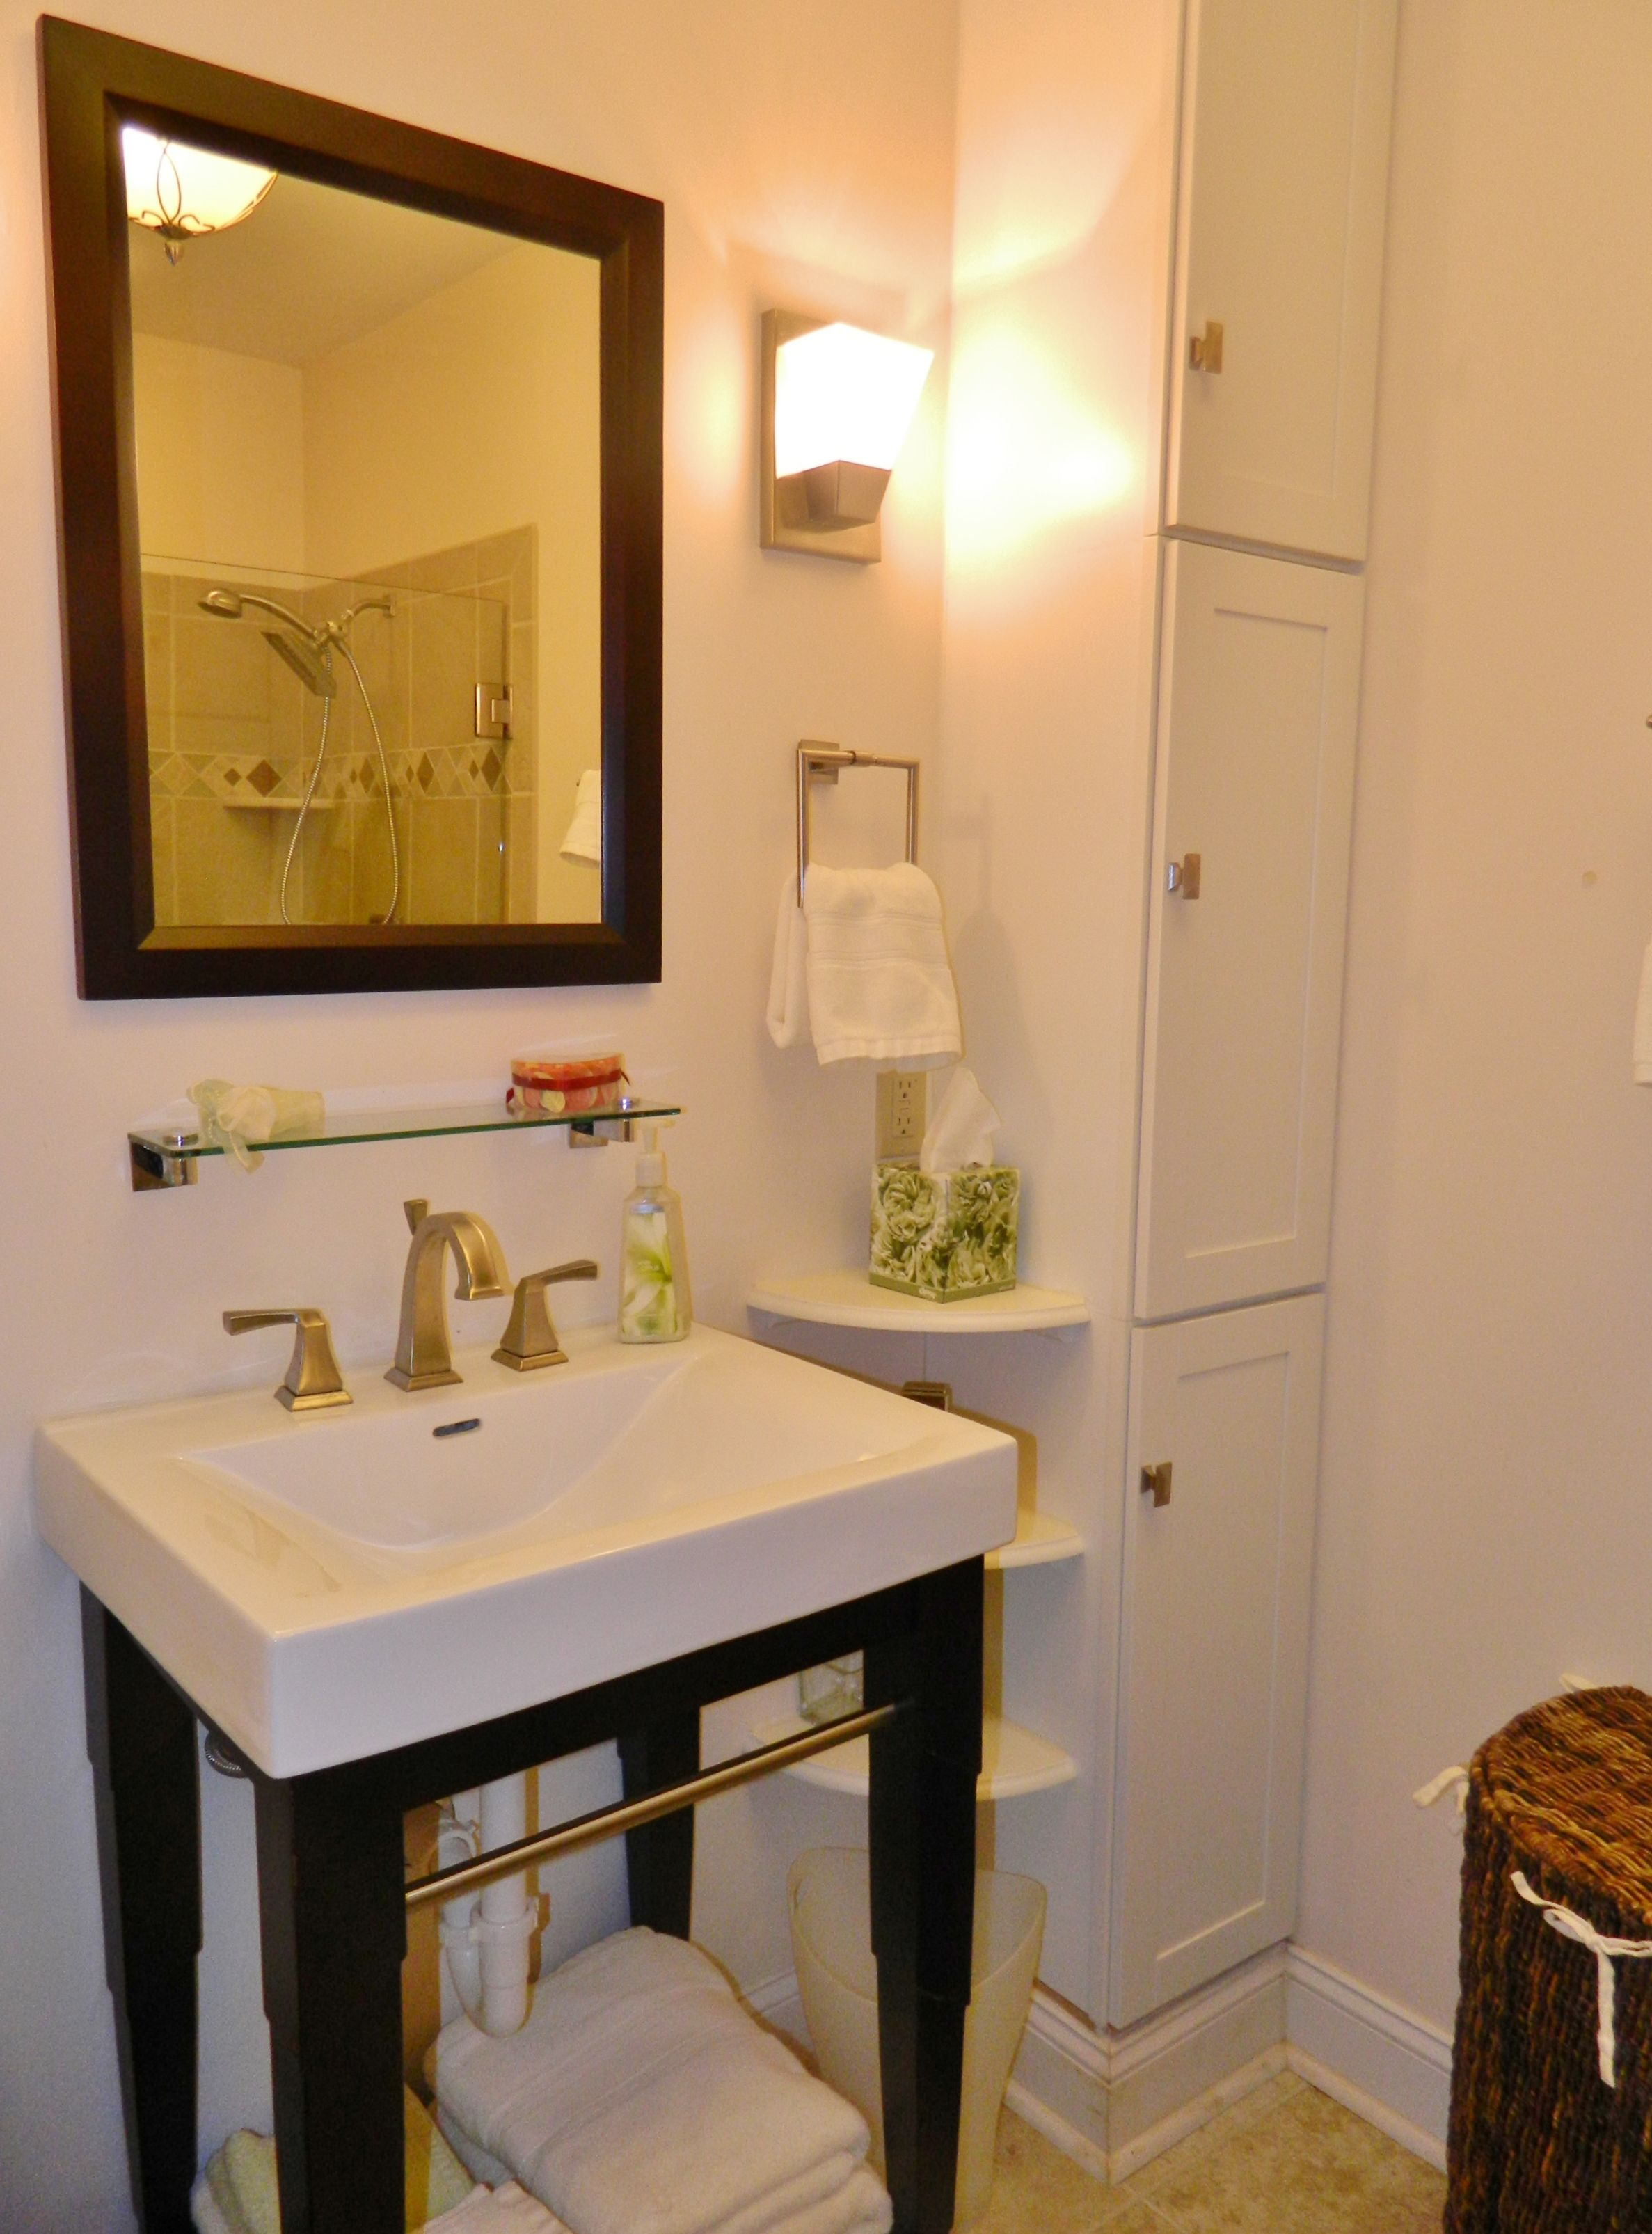 This beautiful bathroom is part of a